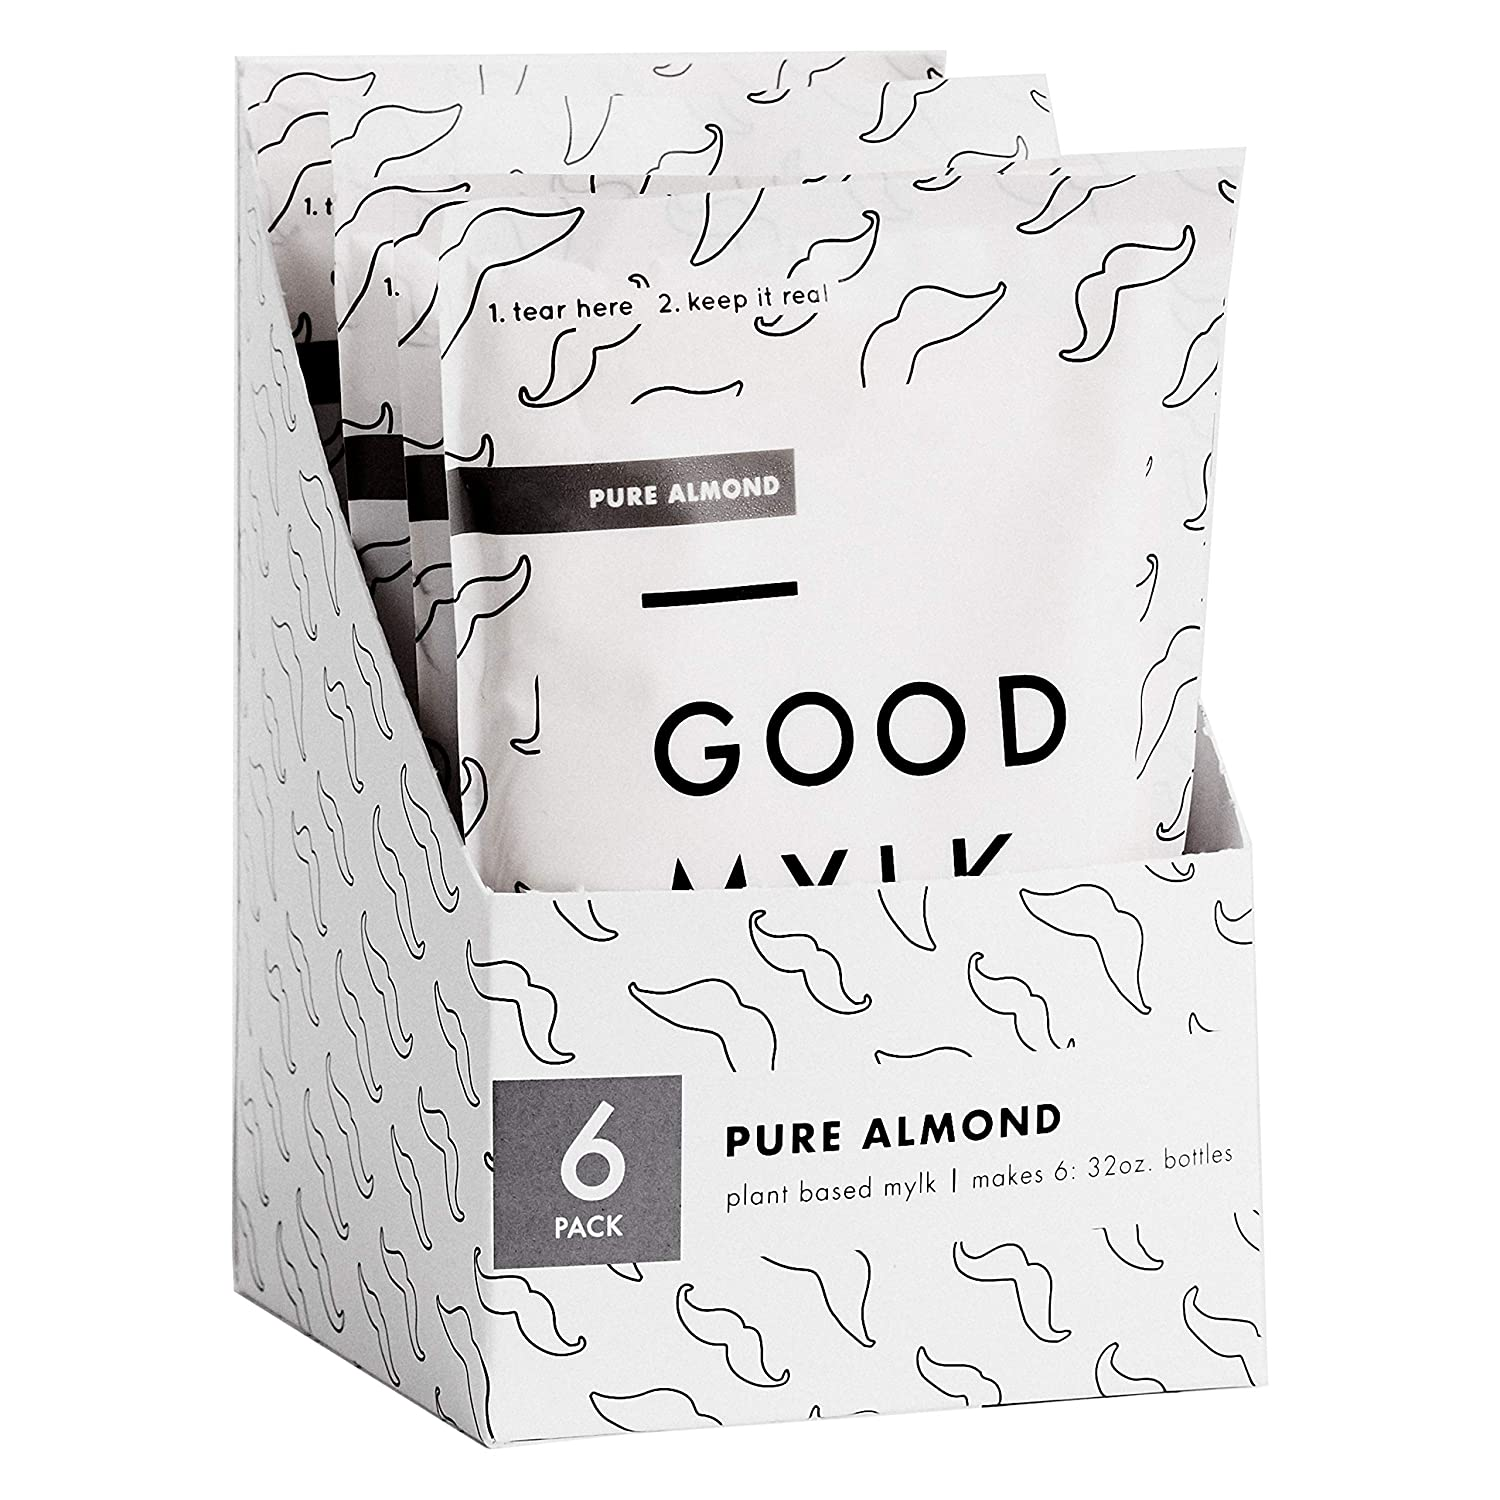 Goodmylk Co. - Almond Milk Concentrate (6 Pack) - Makes 6, 32oz Bottles - Organic, Non-GMO, Vegan, Low Glycemic, Sustainable, Keto, Dairy Free (Unsweetened)